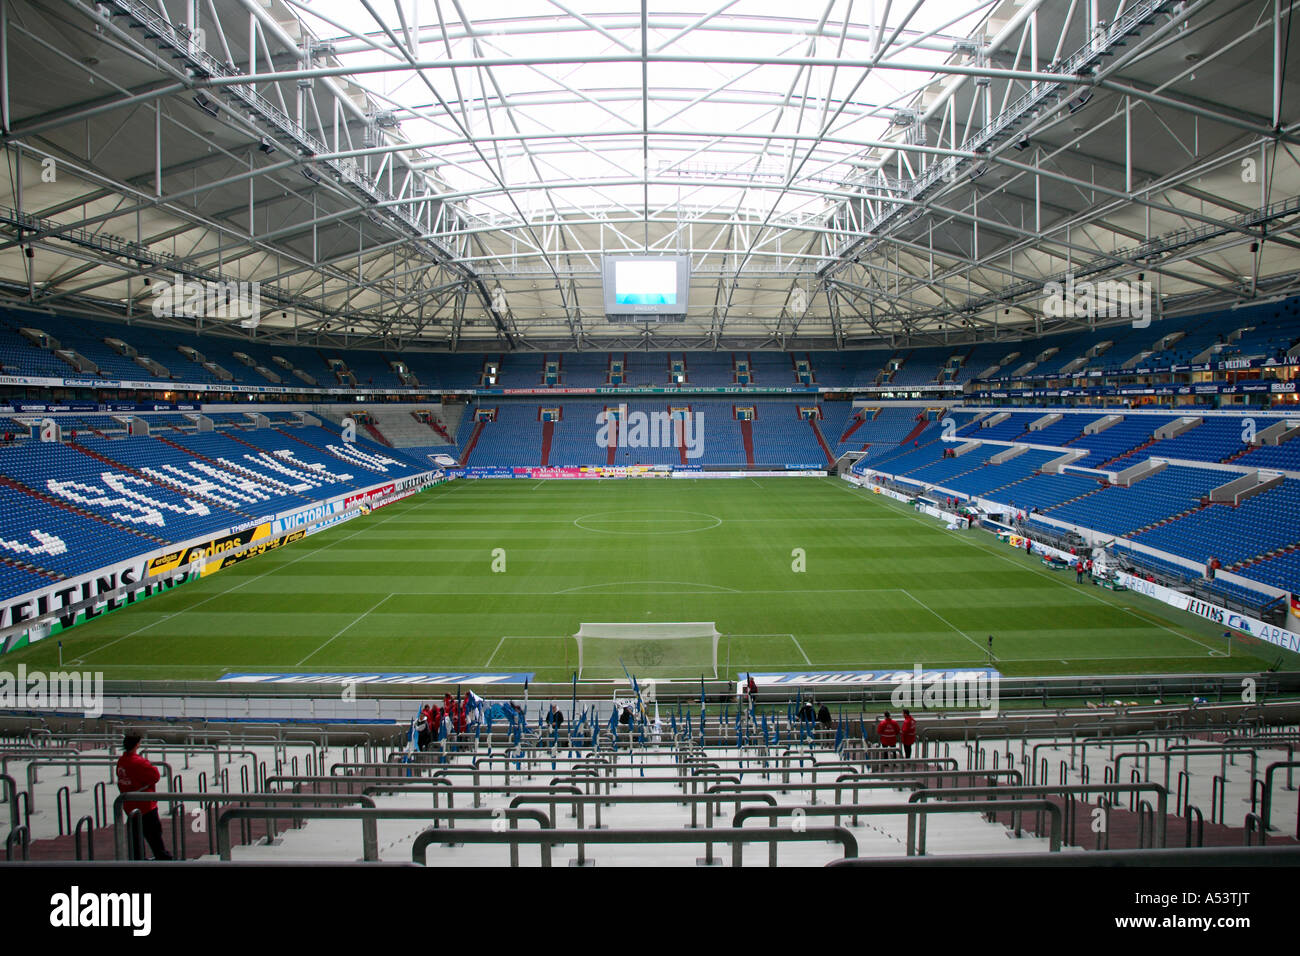 the arena aufschalke now veltins arena gelsenkirchen germany stock photo royalty free image. Black Bedroom Furniture Sets. Home Design Ideas